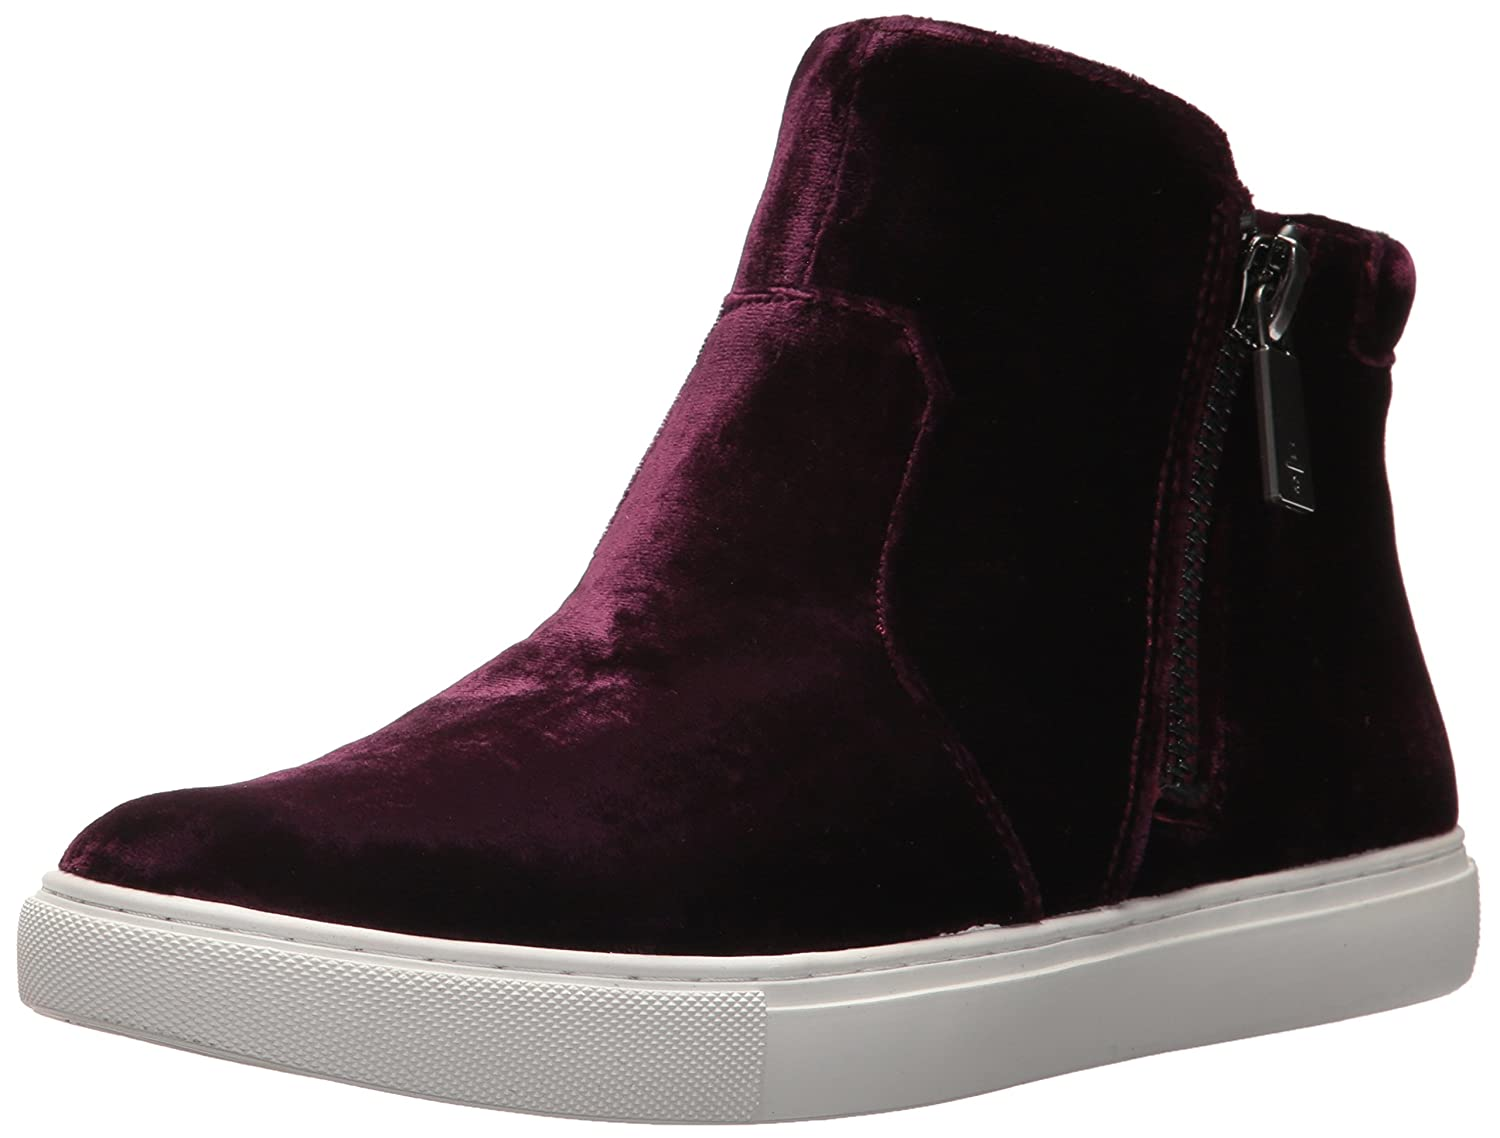 Kenneth Cole New York Women's Kiera Double Zip Mid-Top Velvet Sneaker B073XK99ND 9 B(M) US|Wine